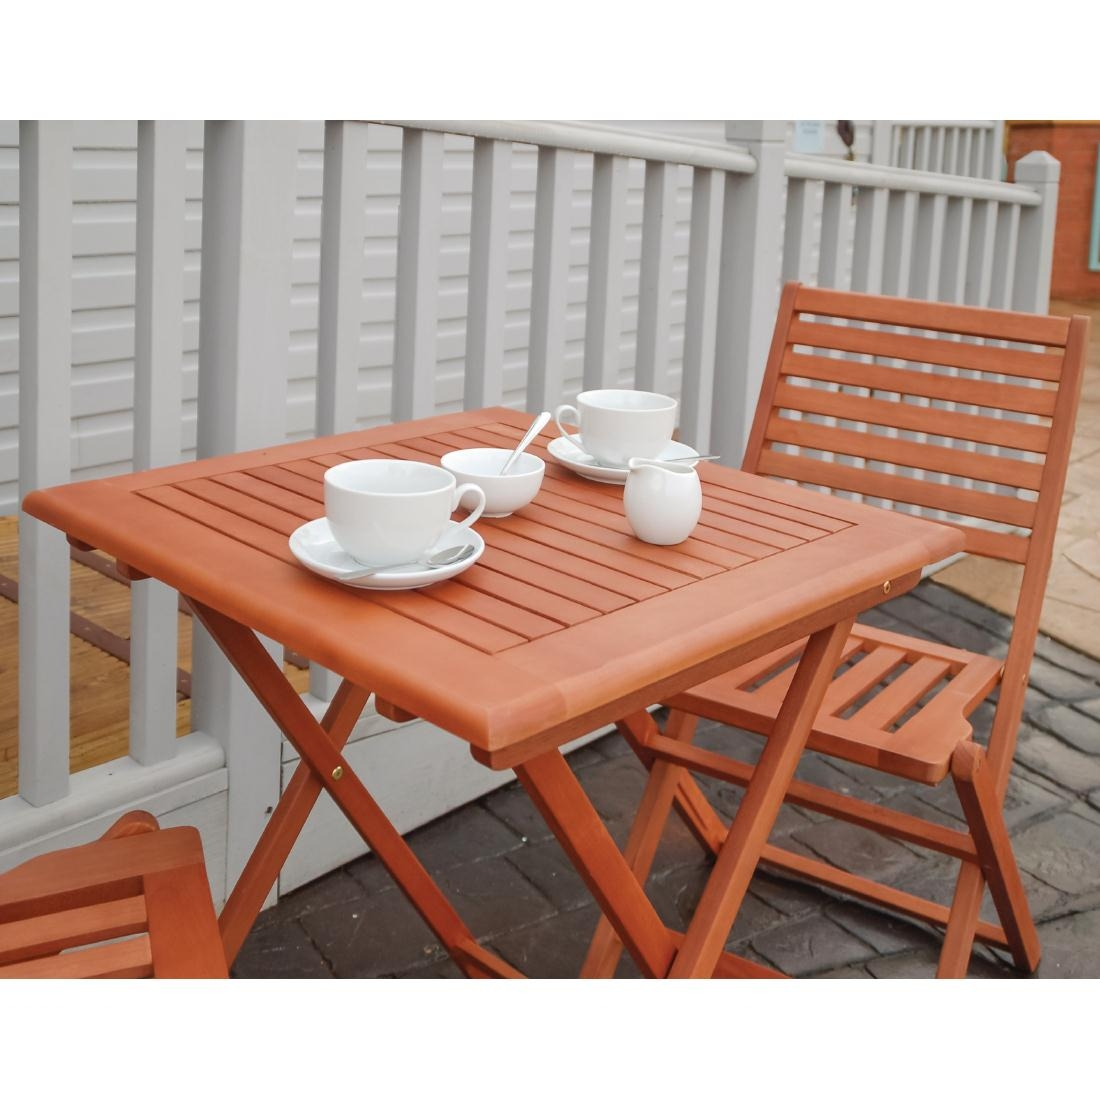 Outdoor wooden bolero squaretable